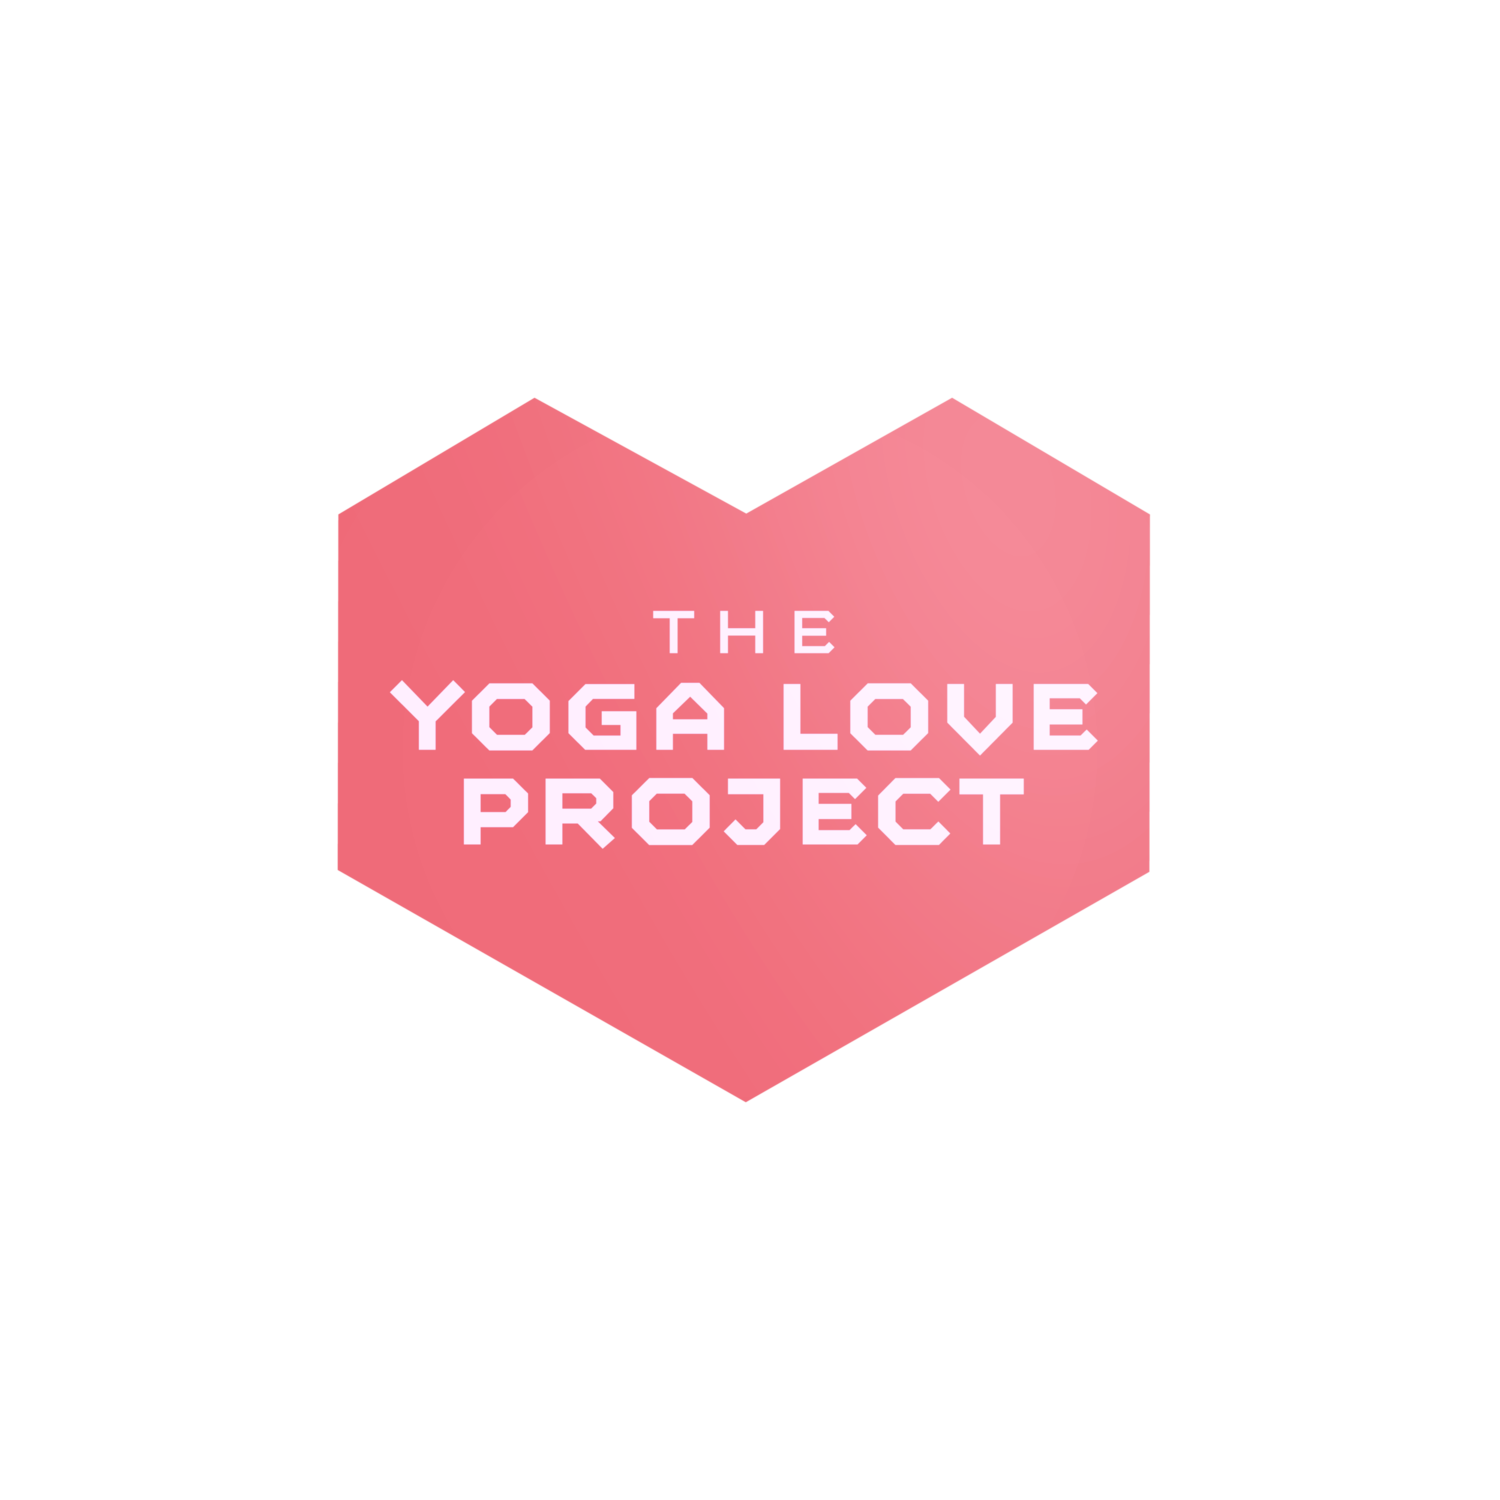 The Yoga Love Project